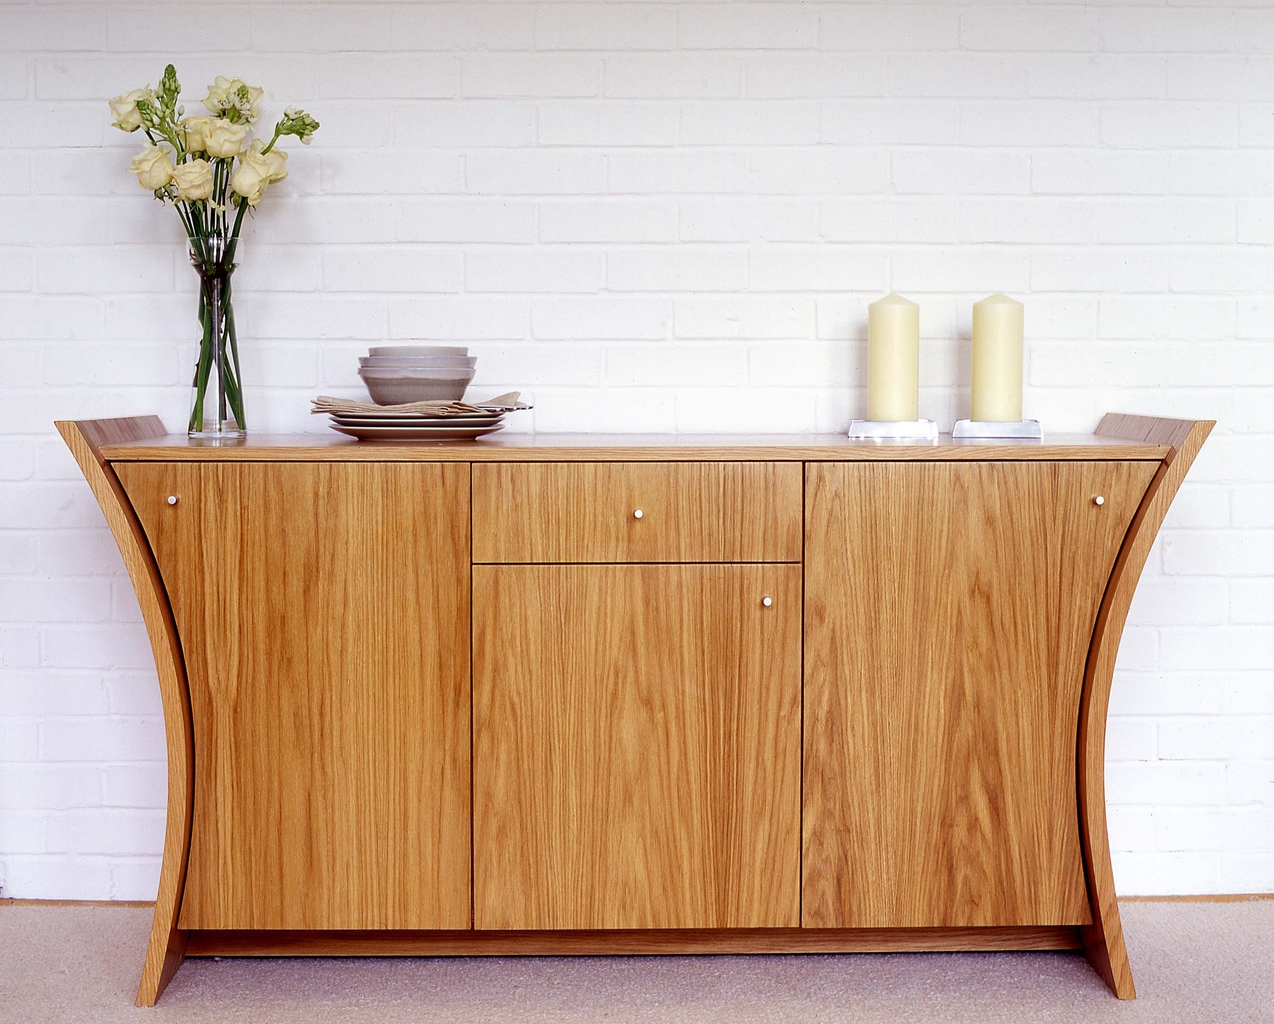 Contemporary Sideboard Cabinet — Optimizing Home Decor Ideas pertaining to Contemporary Sideboard Cabinets (Image 8 of 30)